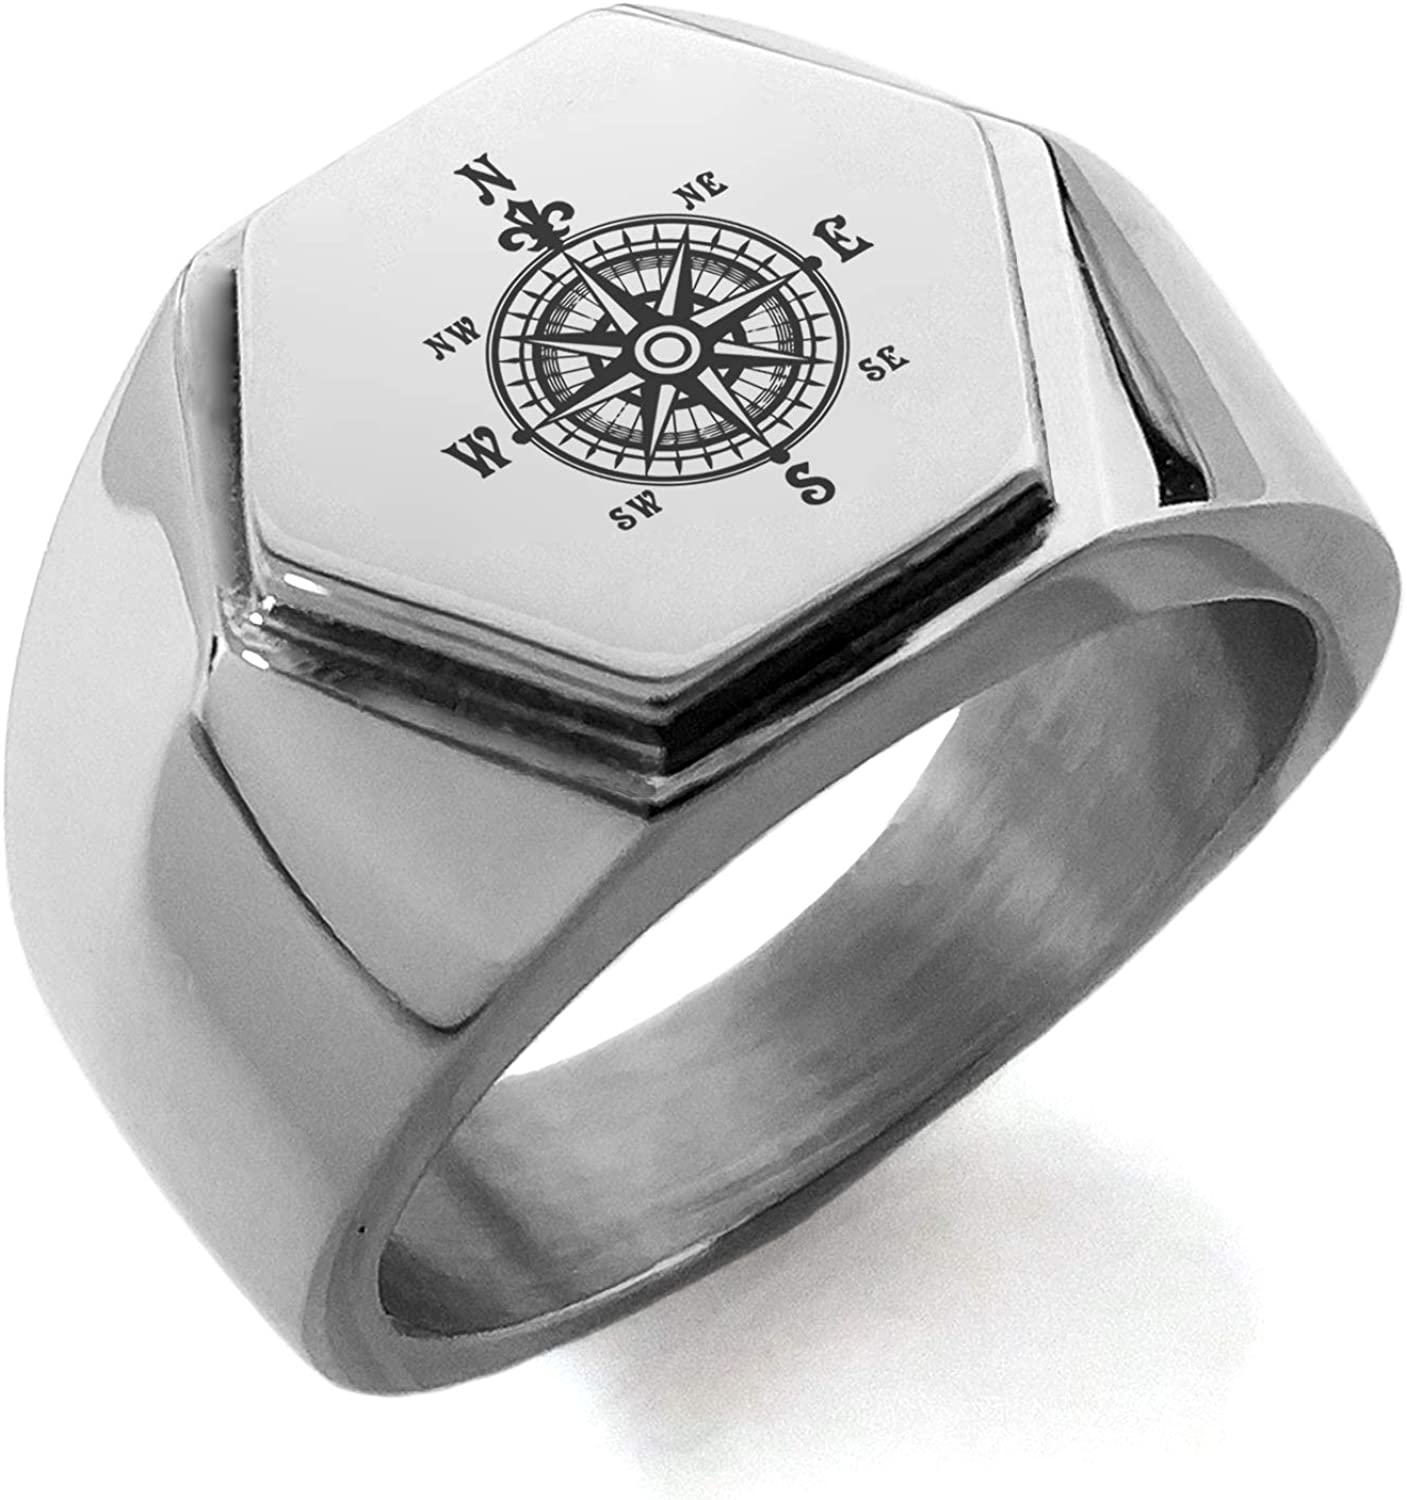 Stainless Steel Nautical Fleur de Lis Compass Hexagon Crest Flat Top Biker Style Polished Ring